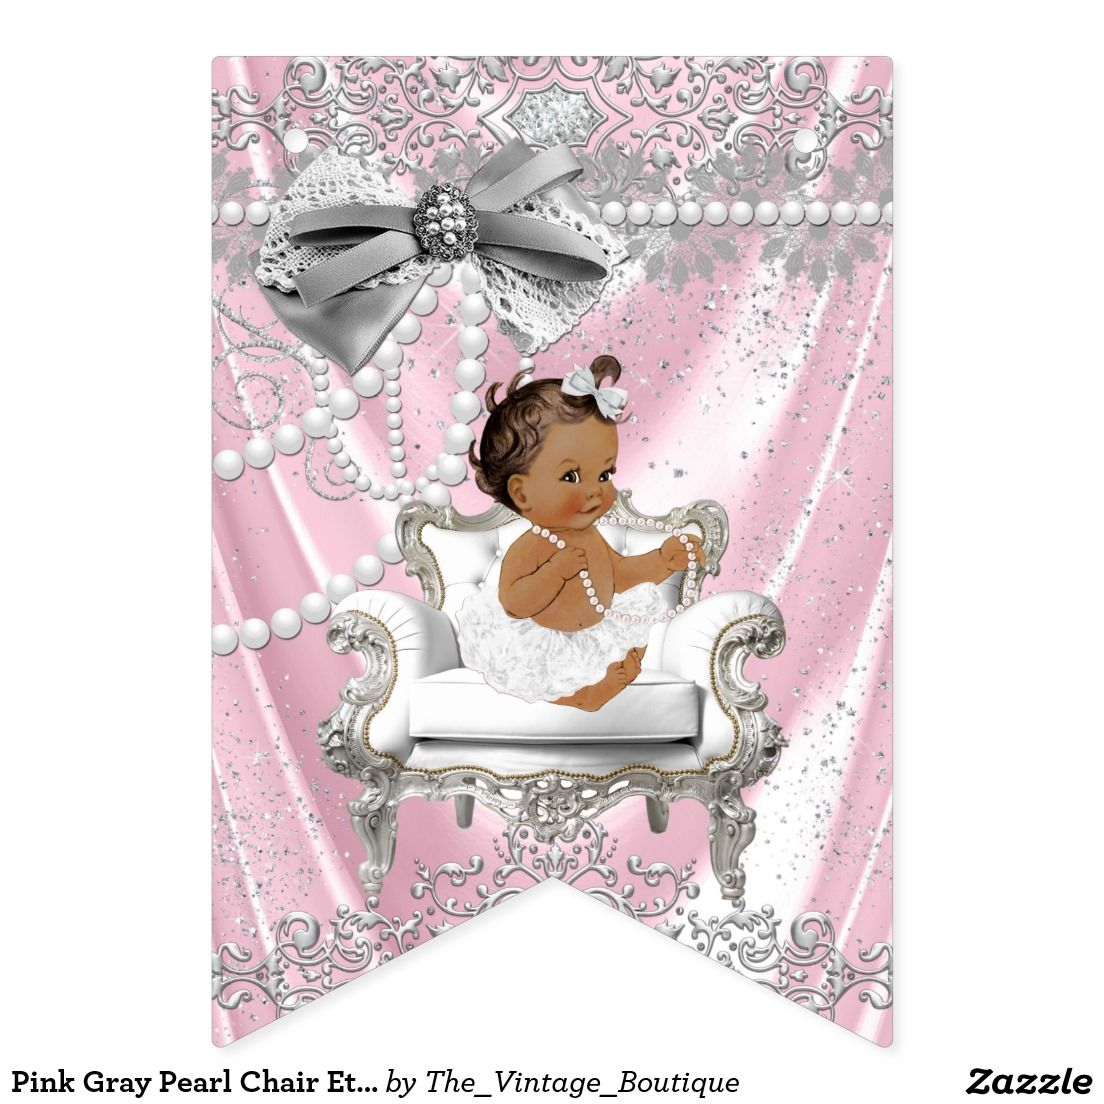 Pink Gray Pearl Chair Ethnic Girl Baby Shower Bunting Flags